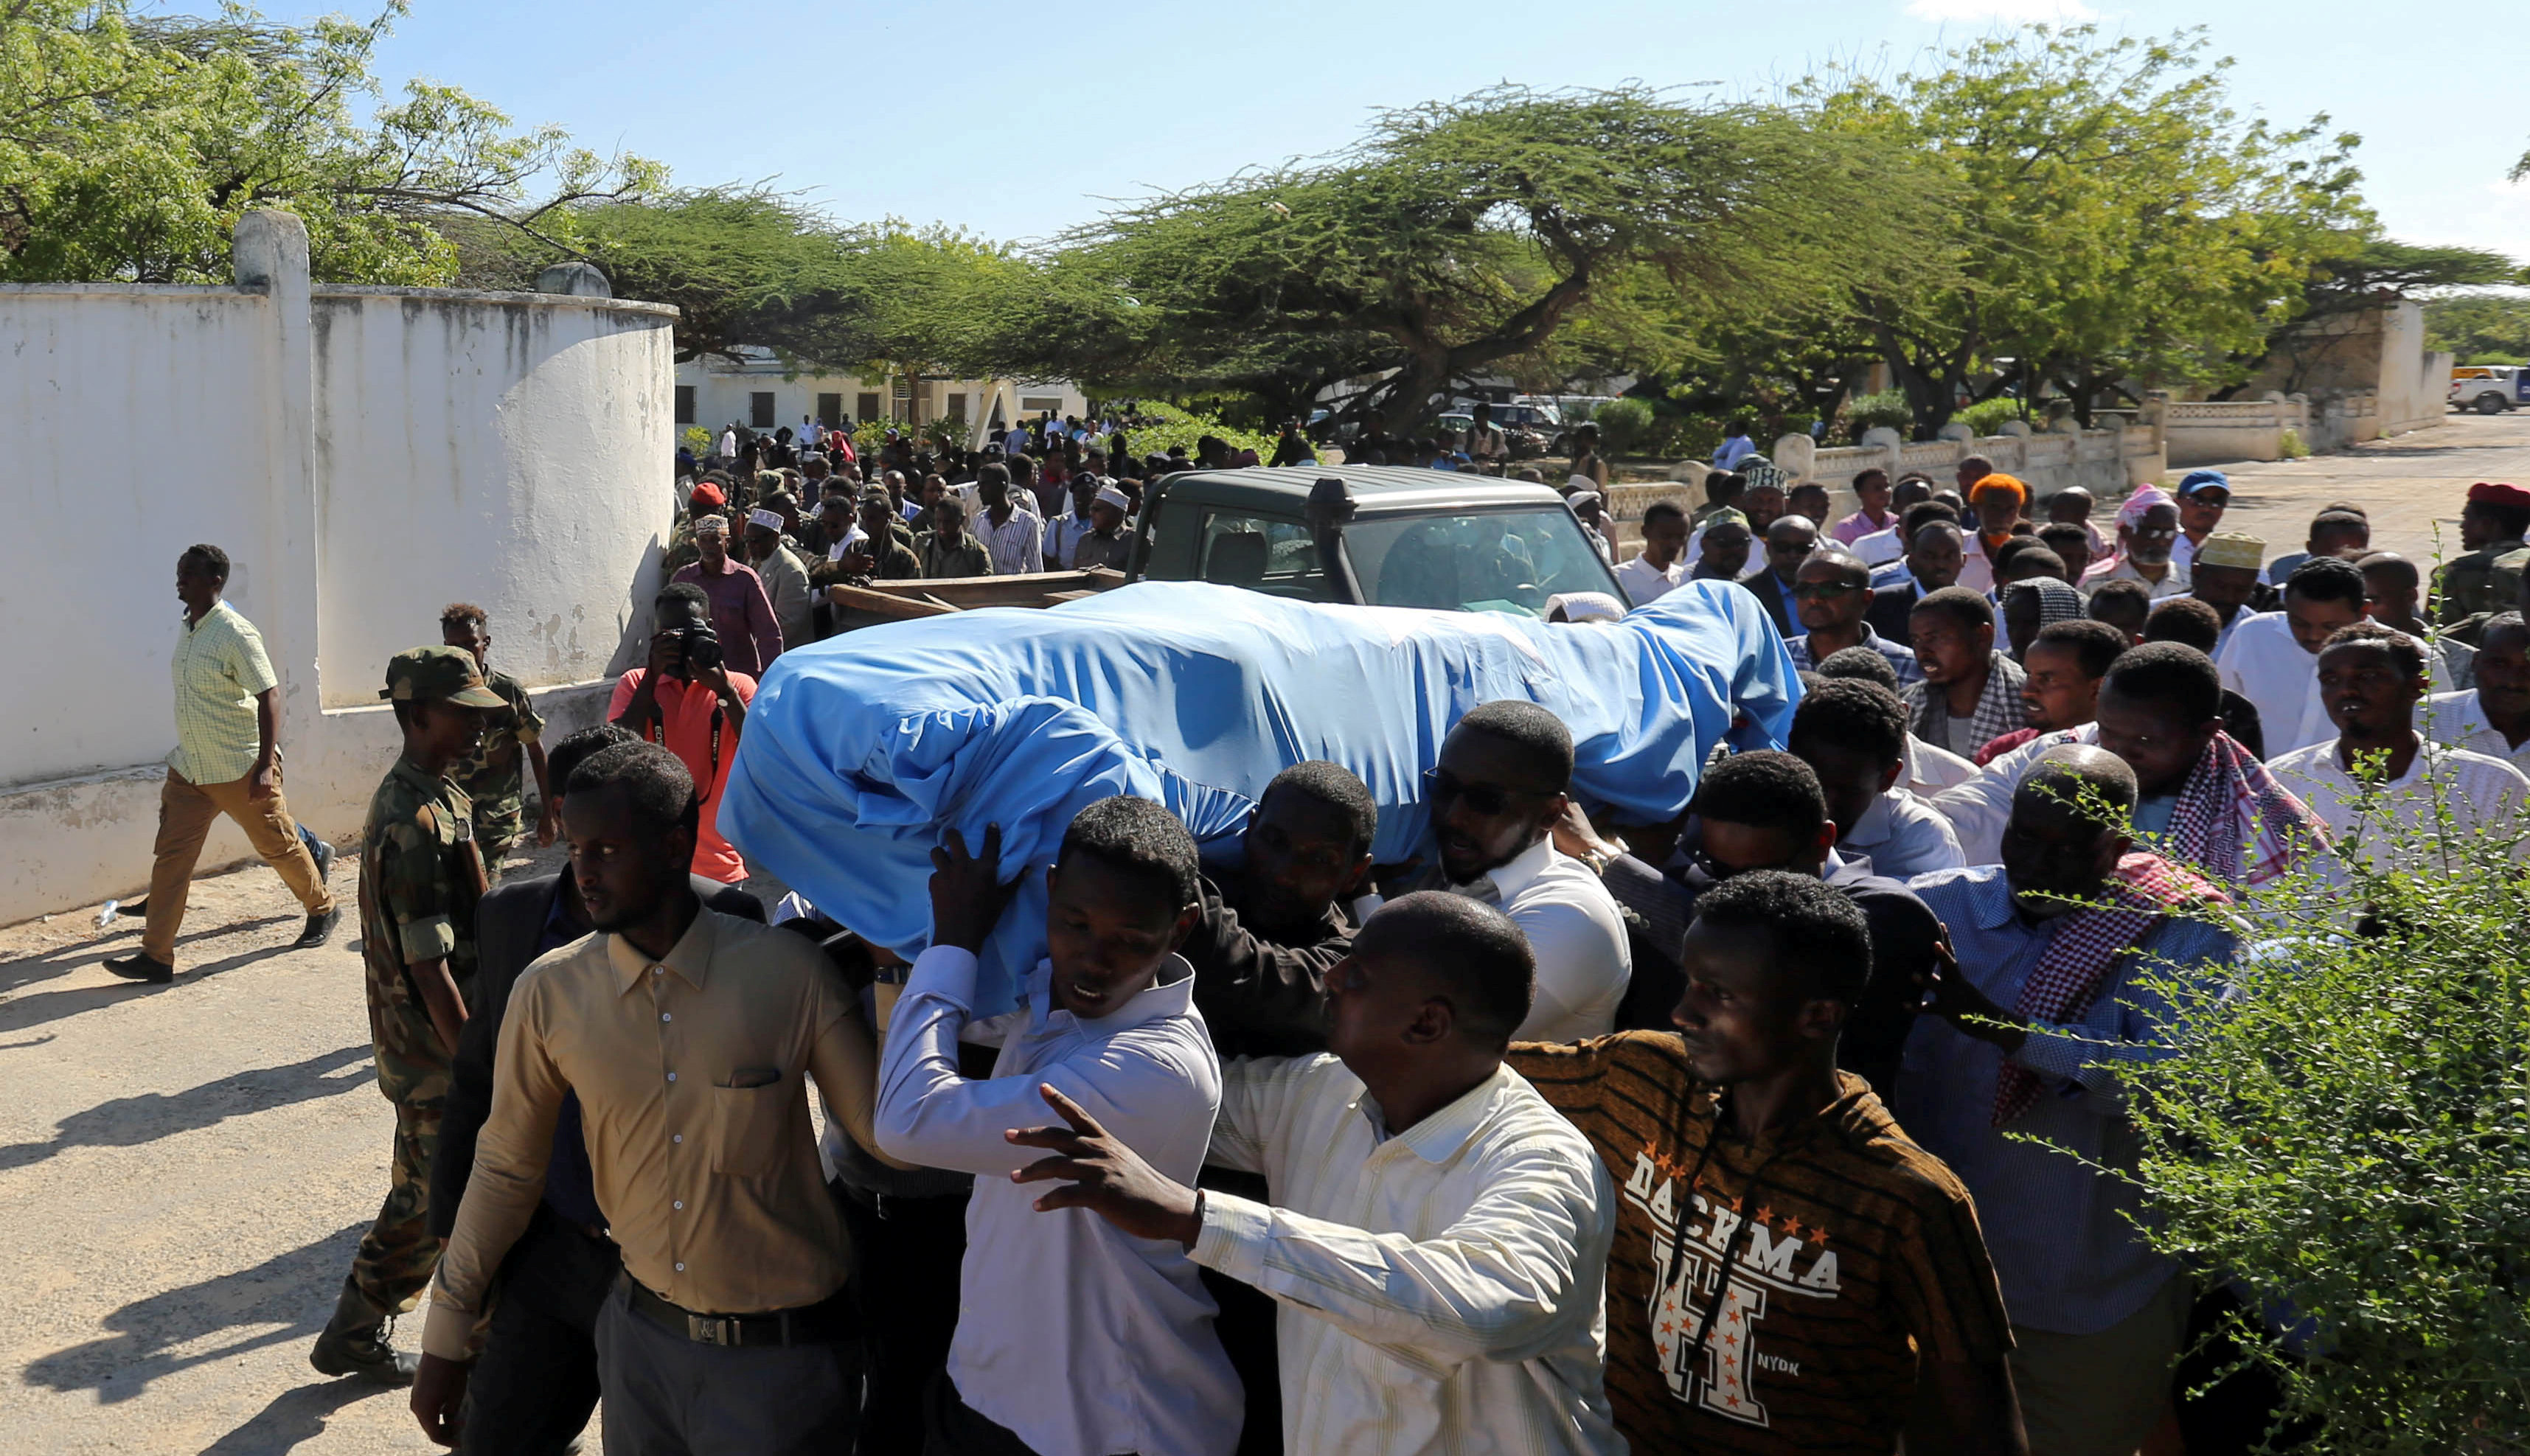 Relatives carry the body of Somalia's public works minister who was shot and killed in the capital Mogadishu, Somalia May 4, 2017.